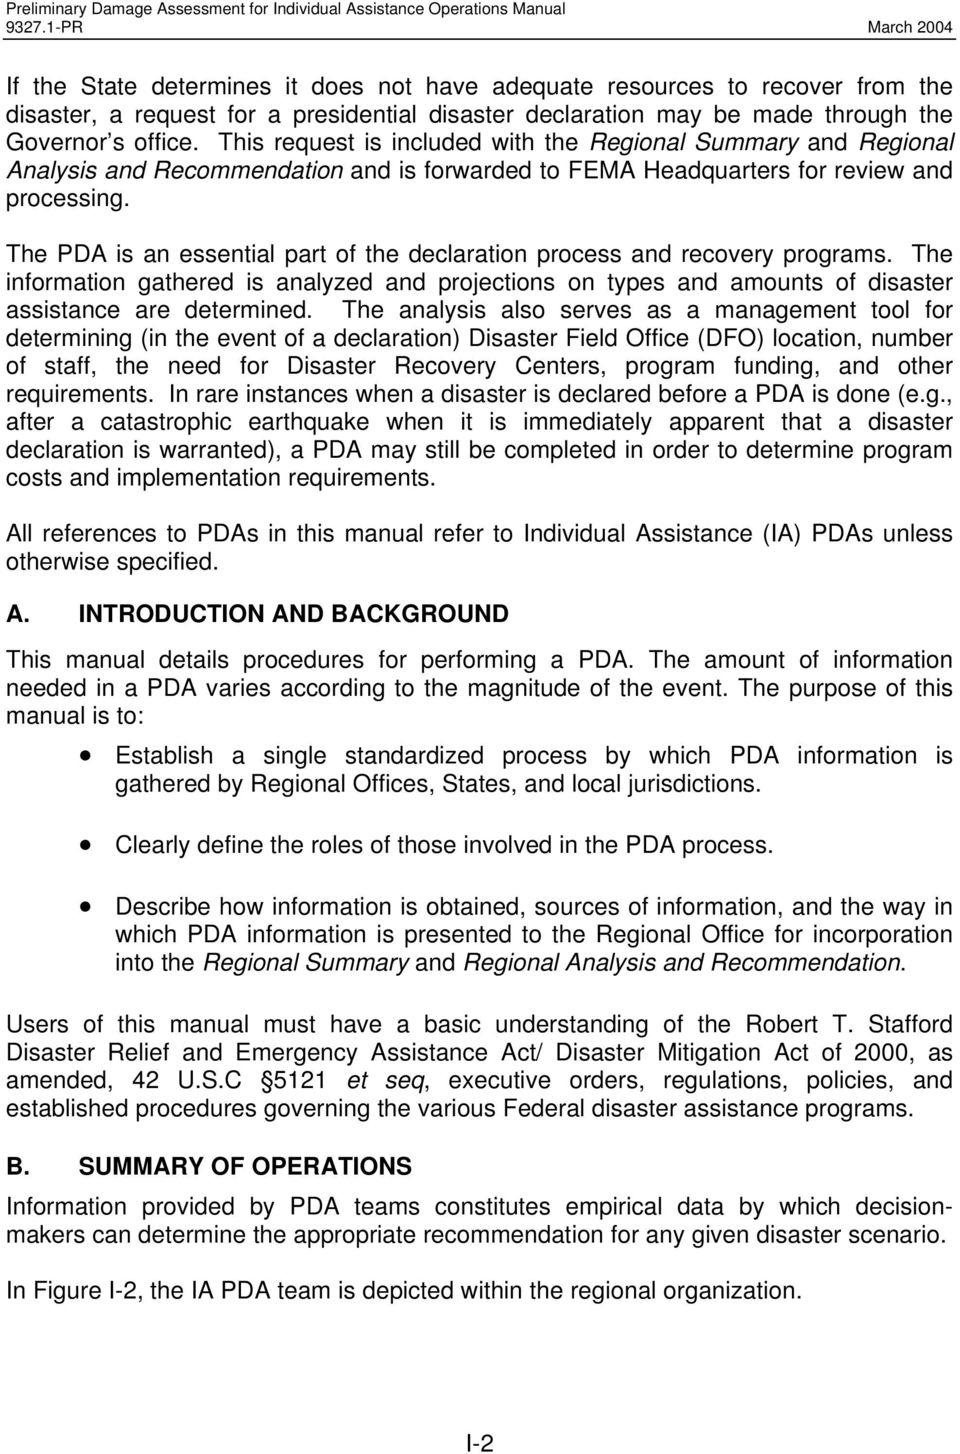 The PDA is an essential part of the declaration process and recovery programs. The information gathered is analyzed and projections on types and amounts of disaster assistance are determined.